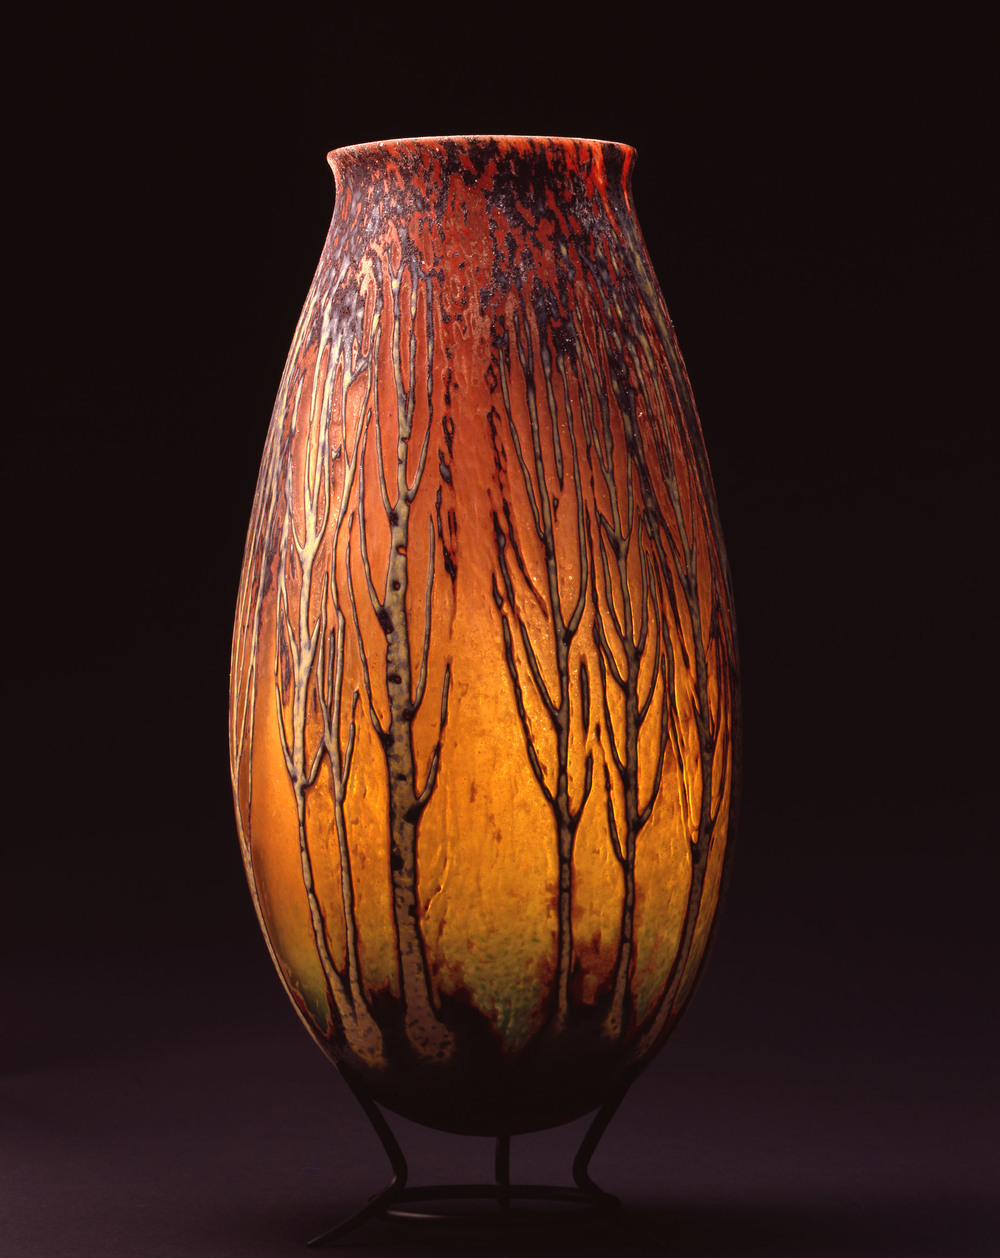 William Morris,  Vase with Poplar Tree Grove    (2004, glass, 15 x 7 1/8 x 7 1/8 inches), WM.33